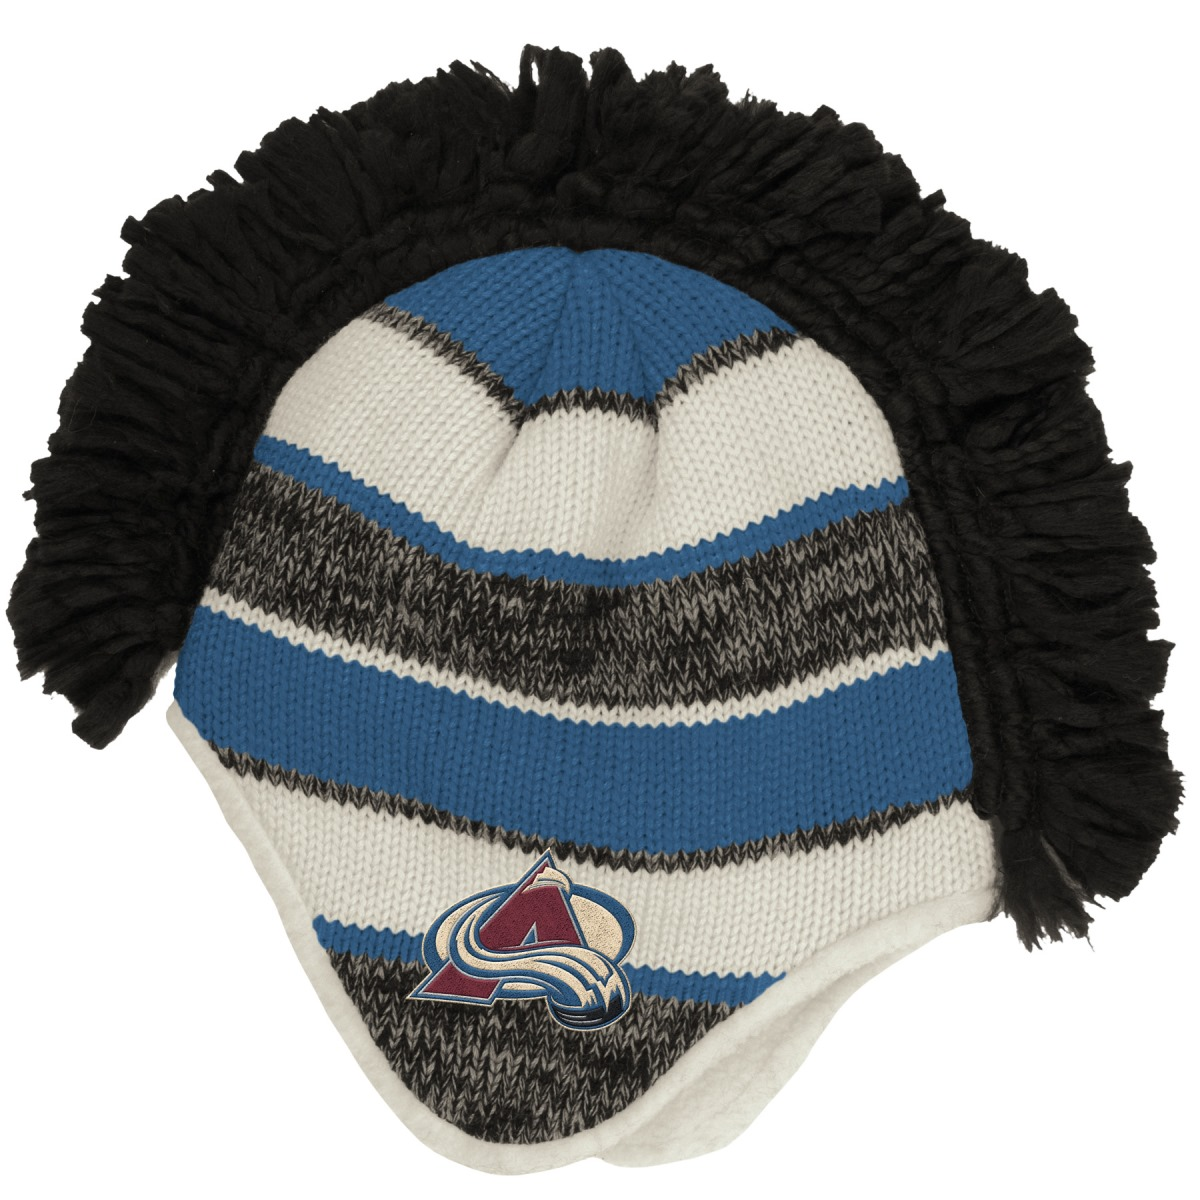 "Colorado Avalanche Reebok NHL 2015 ""Face-Off"" Spiked Mohawk Knit Hat by Reebok"